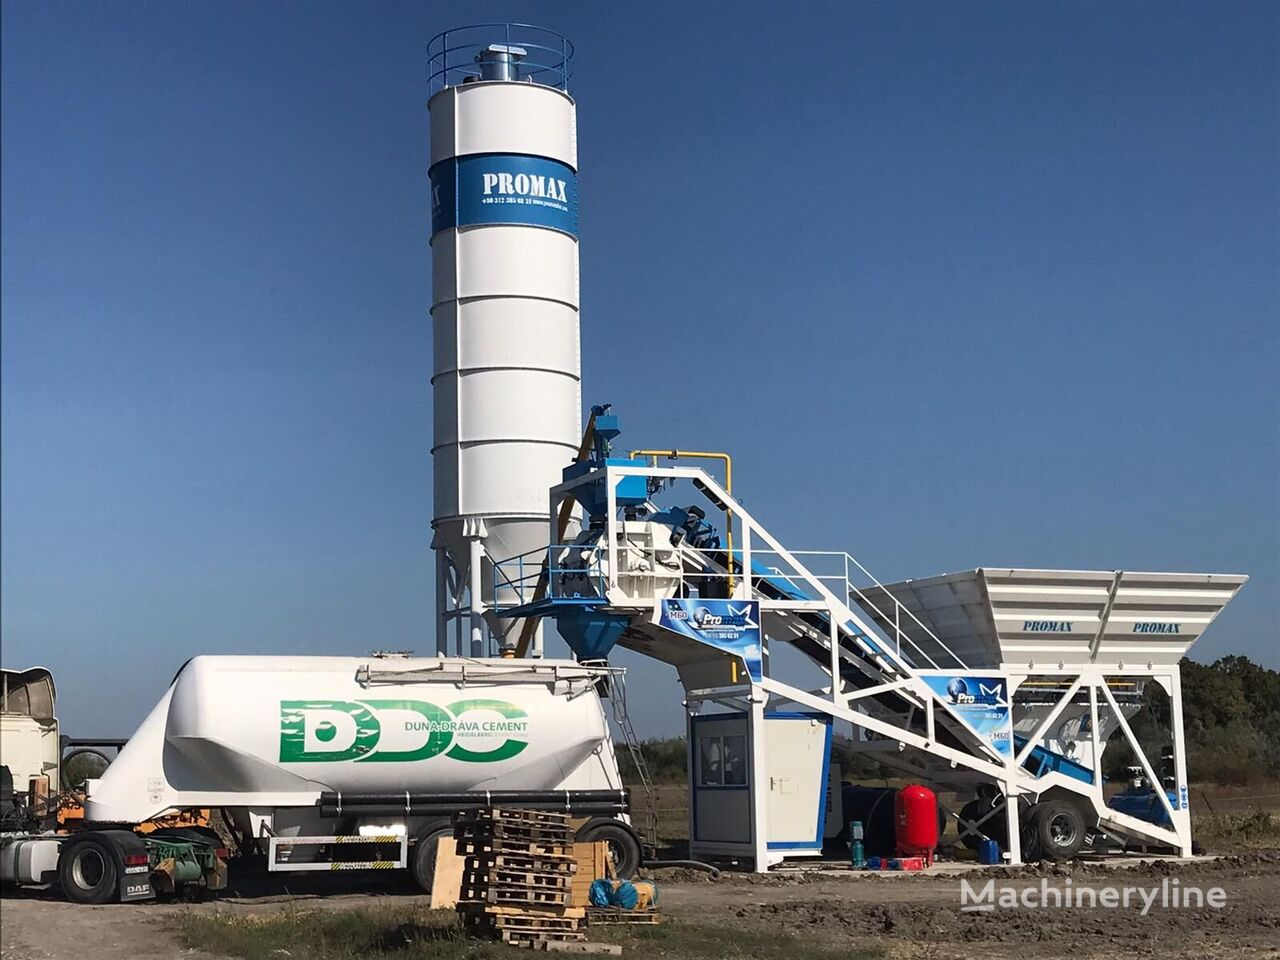 ny PROMAX Mobile Concrete Batching Plant M60-SNG (60m3/h) betongfabrikk